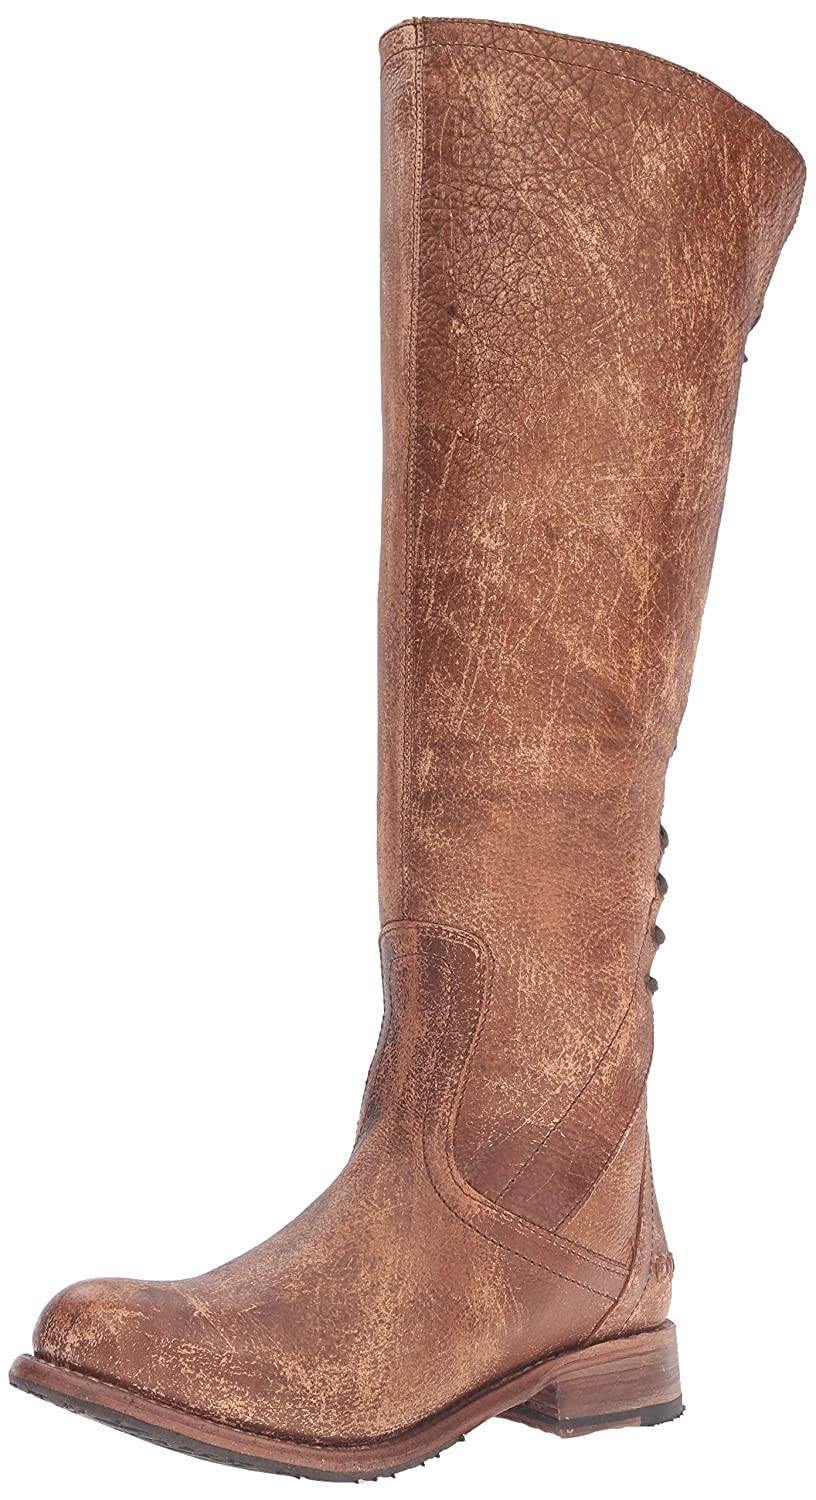 Bed|Stu Women's Surrey Boot B01DBW2FP6 6 B(M) US|Caramel Lux